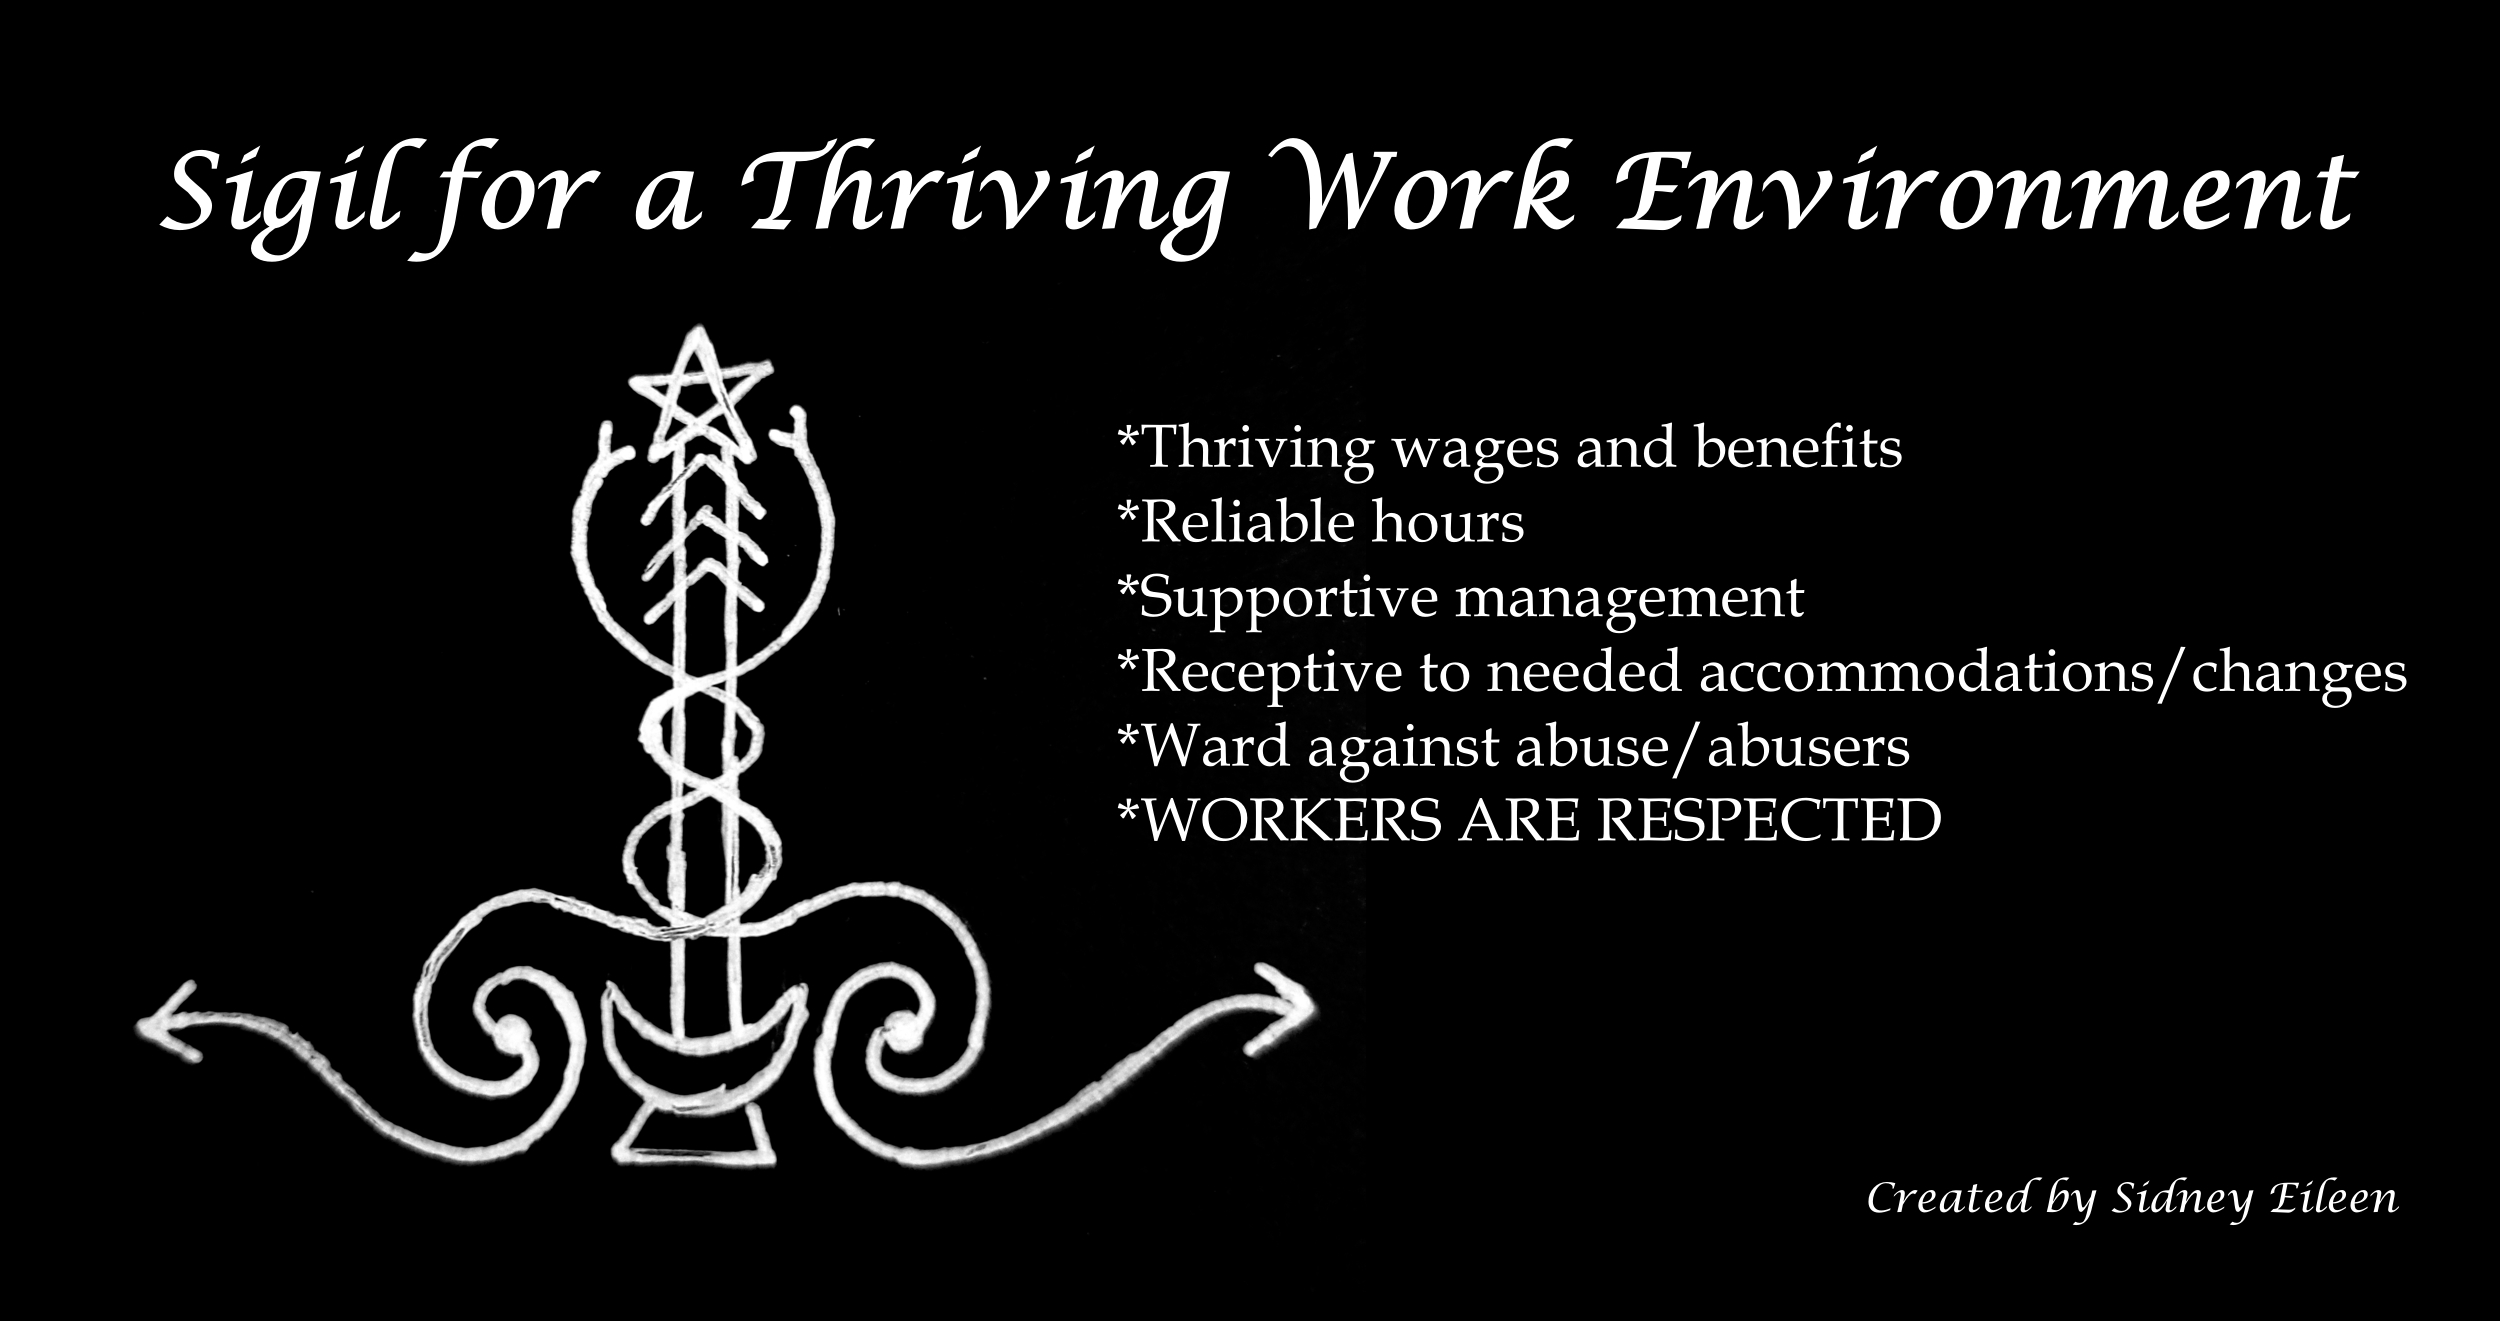 Sigil for a Thriving Work Environment, by Sidney Eileen